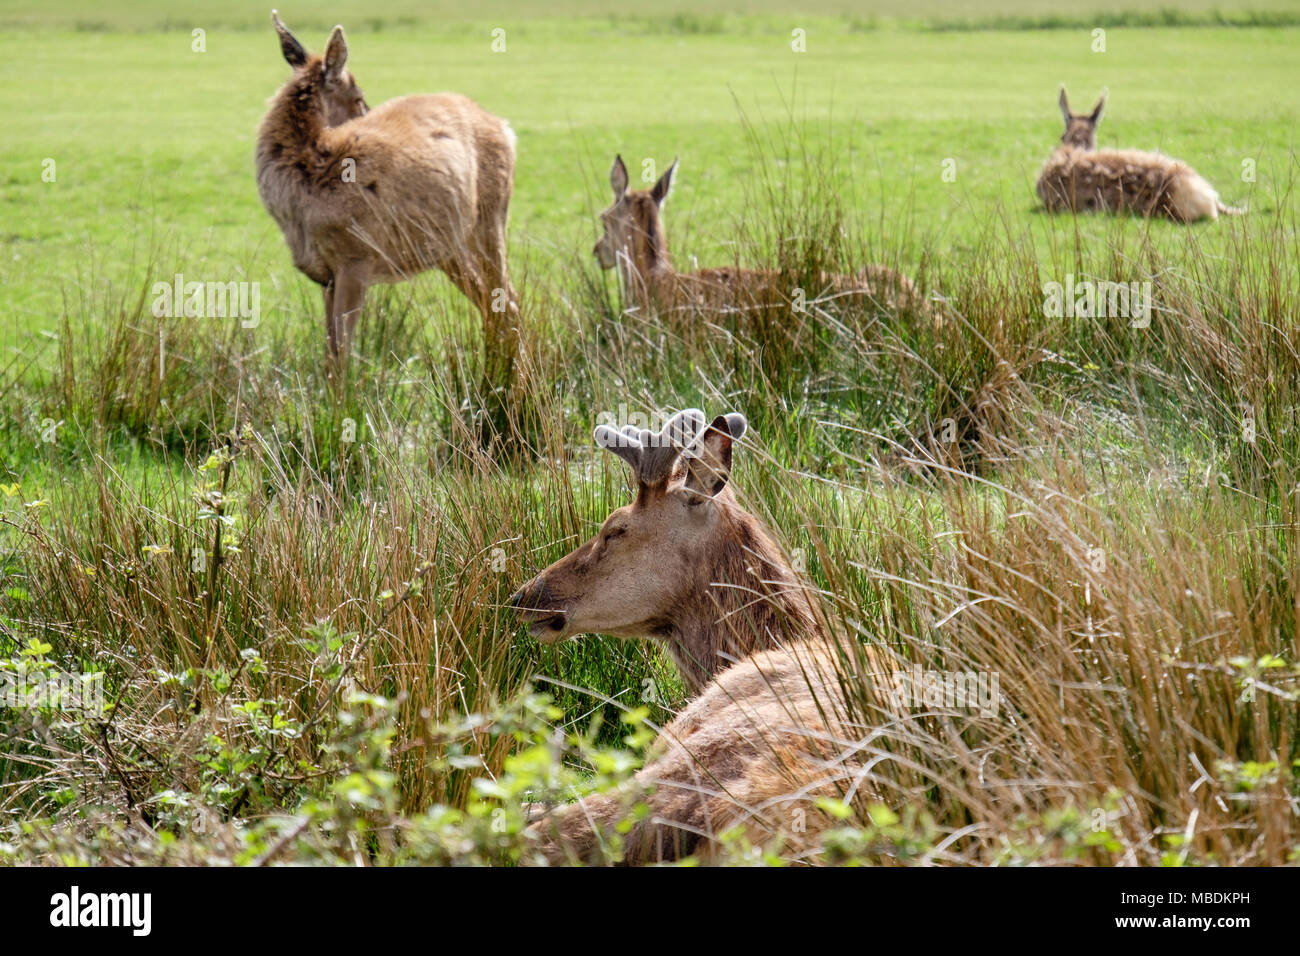 Red deer (Cervus elaphus) grazing and resting on the golf course. Lochranza, Isle of Arran, North Ayrshire, Scotland, UK, Britain - Stock Image